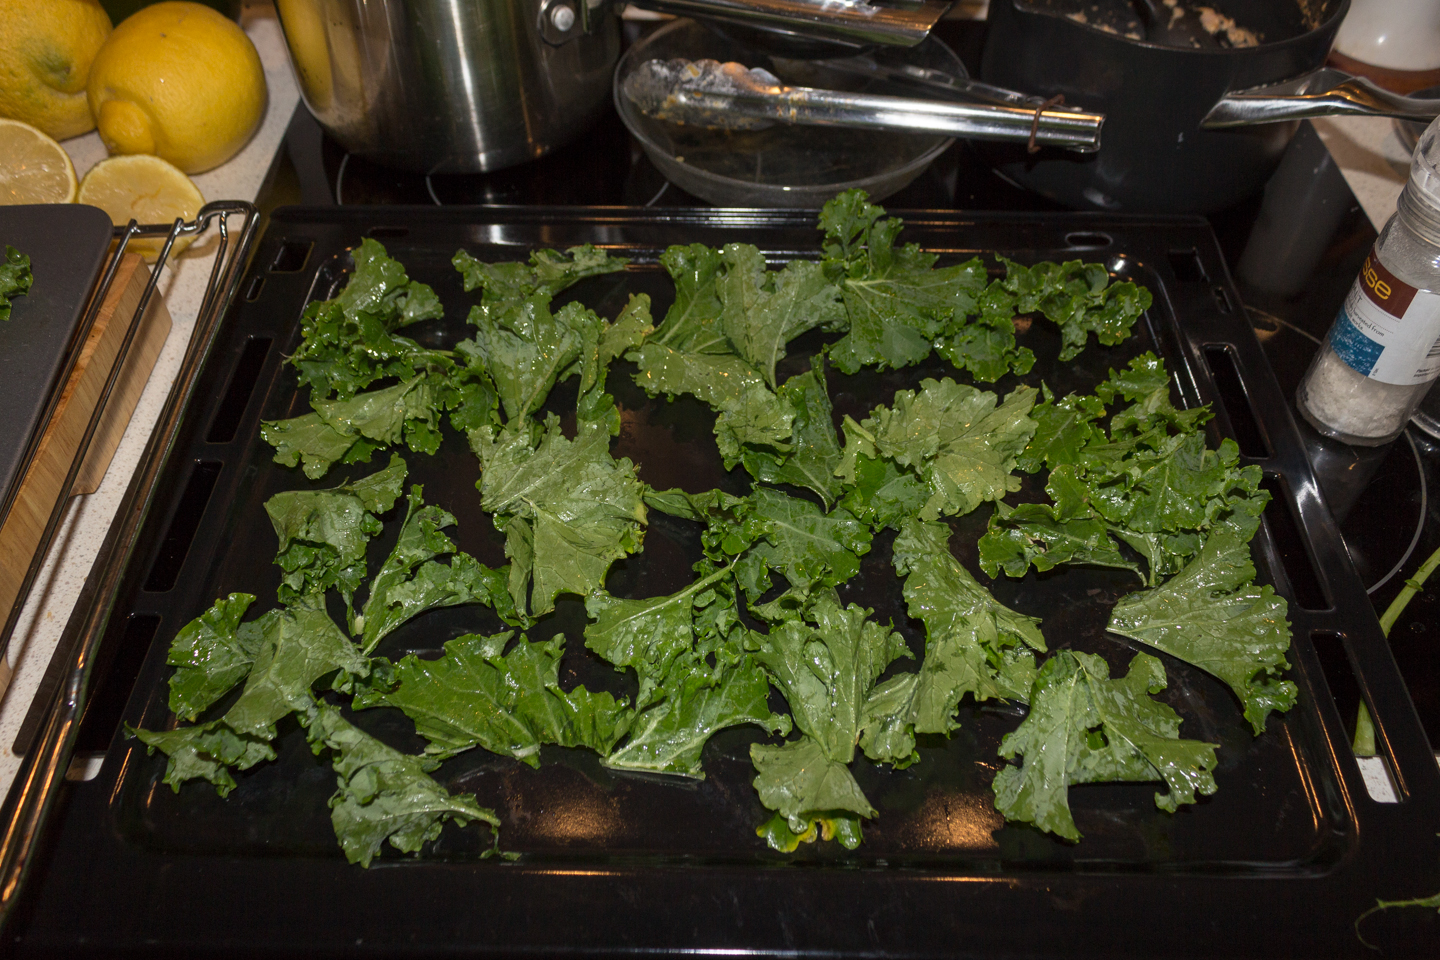 Tear the Kale leaf into bite size pieces and toss Kale in a bowl with olive oil.